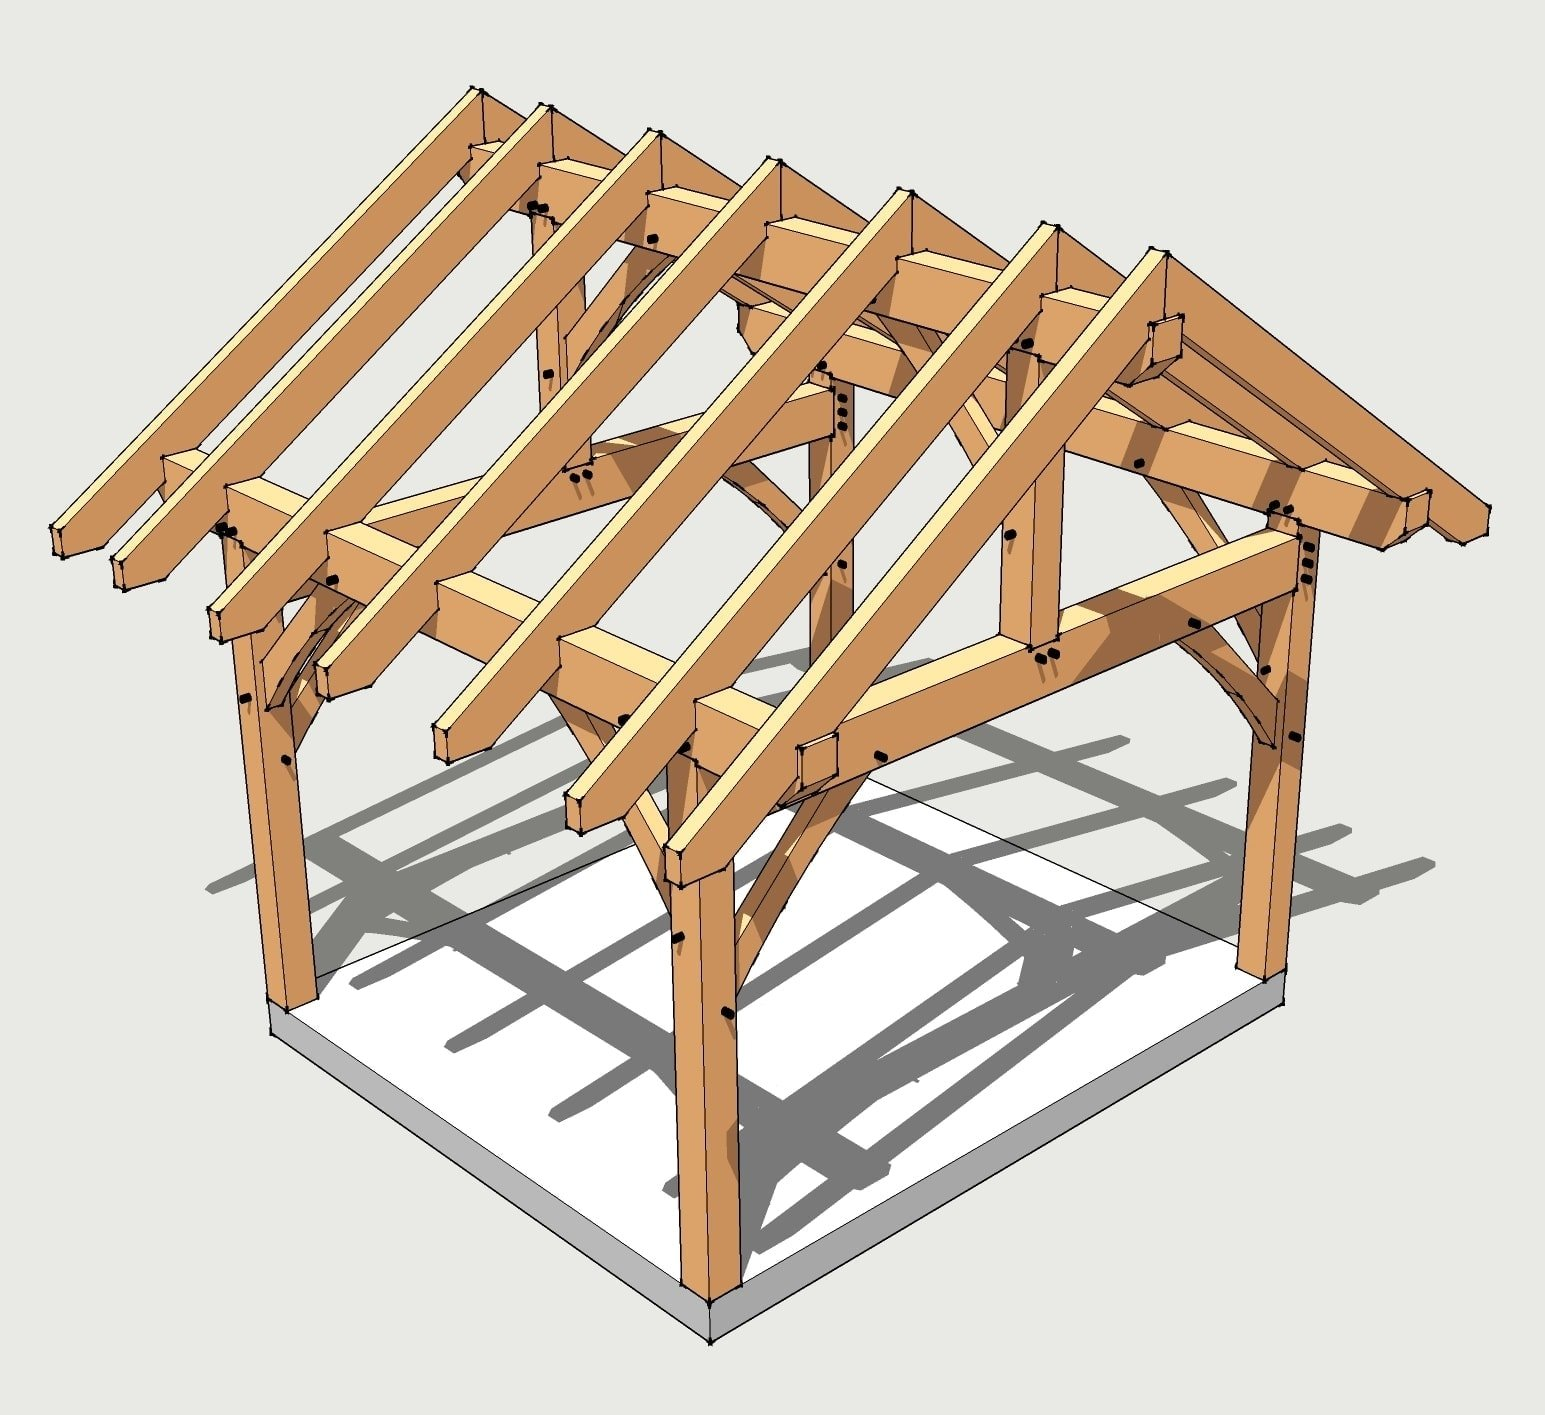 12x14 timber frame plan timber frame hq A frame blueprints